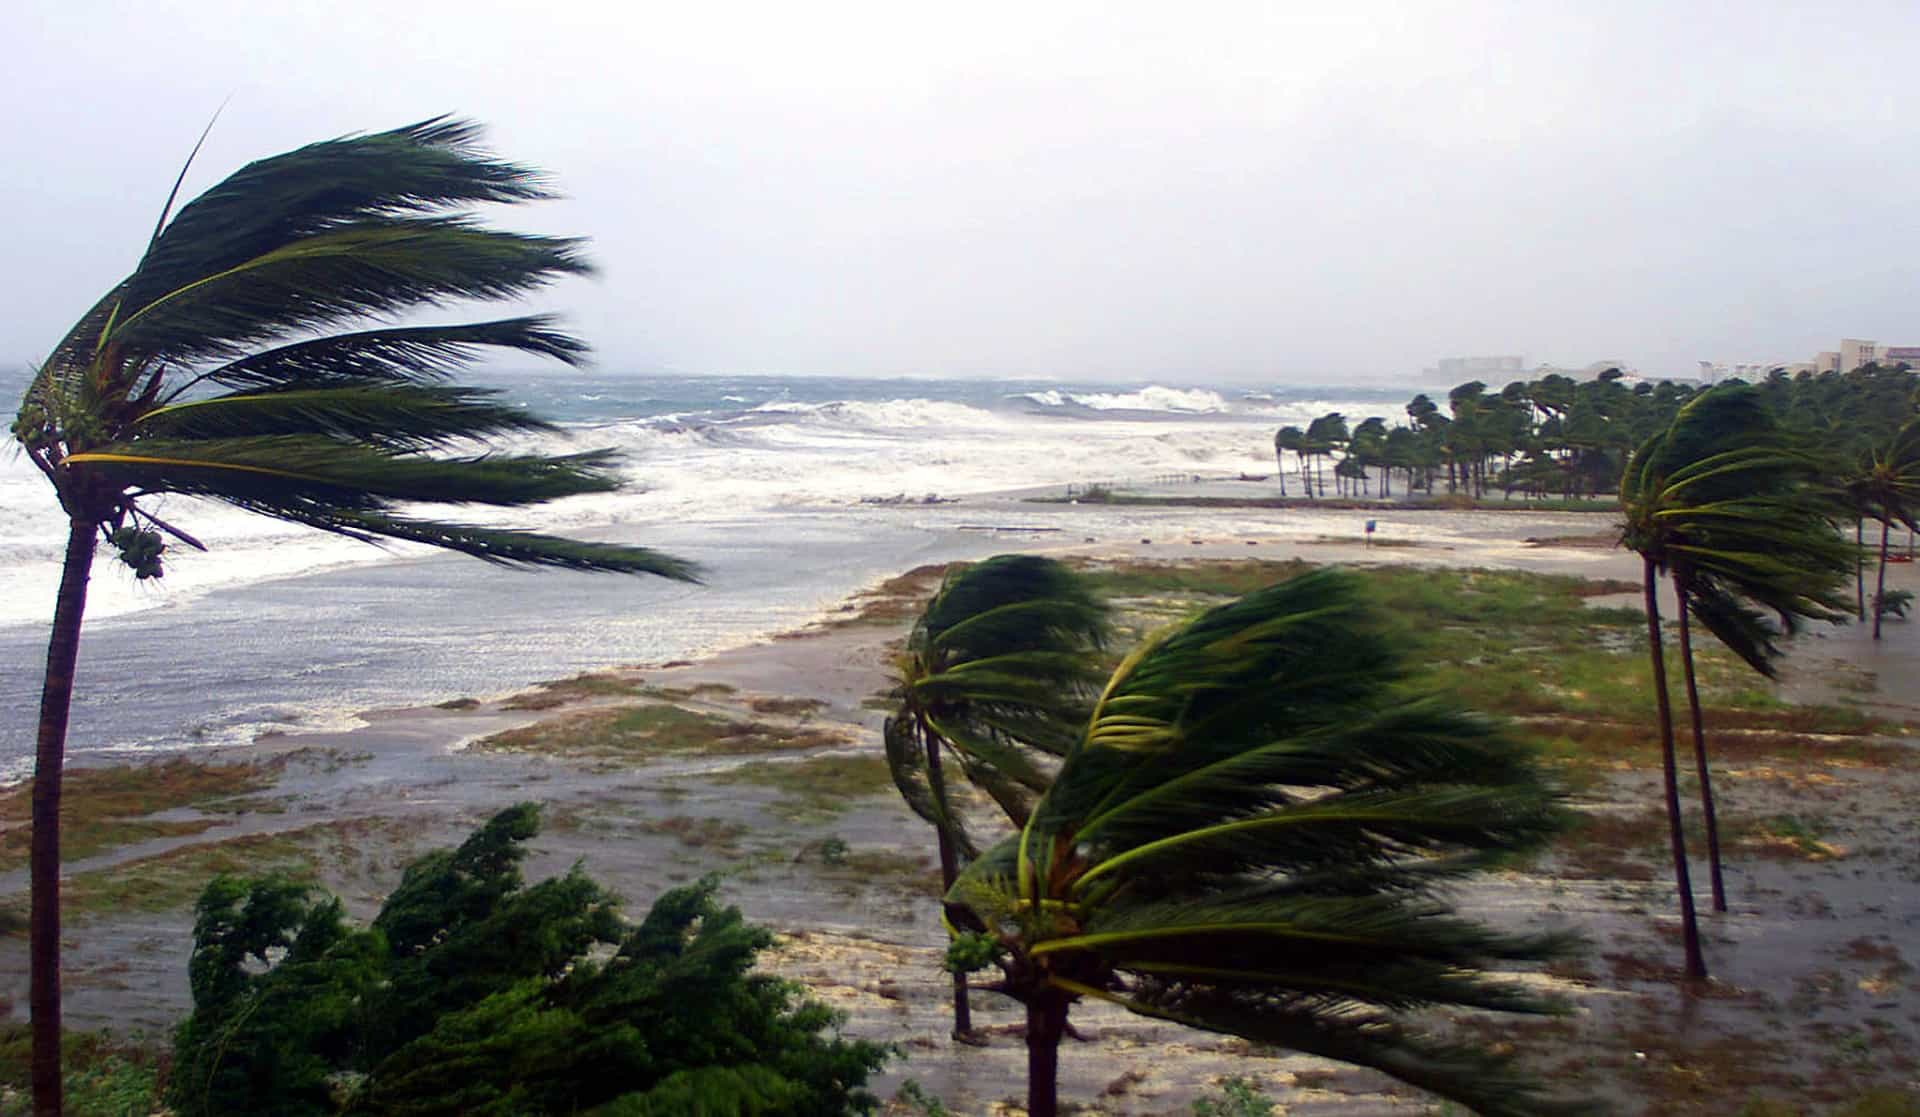 The world's most devastating tropical storms